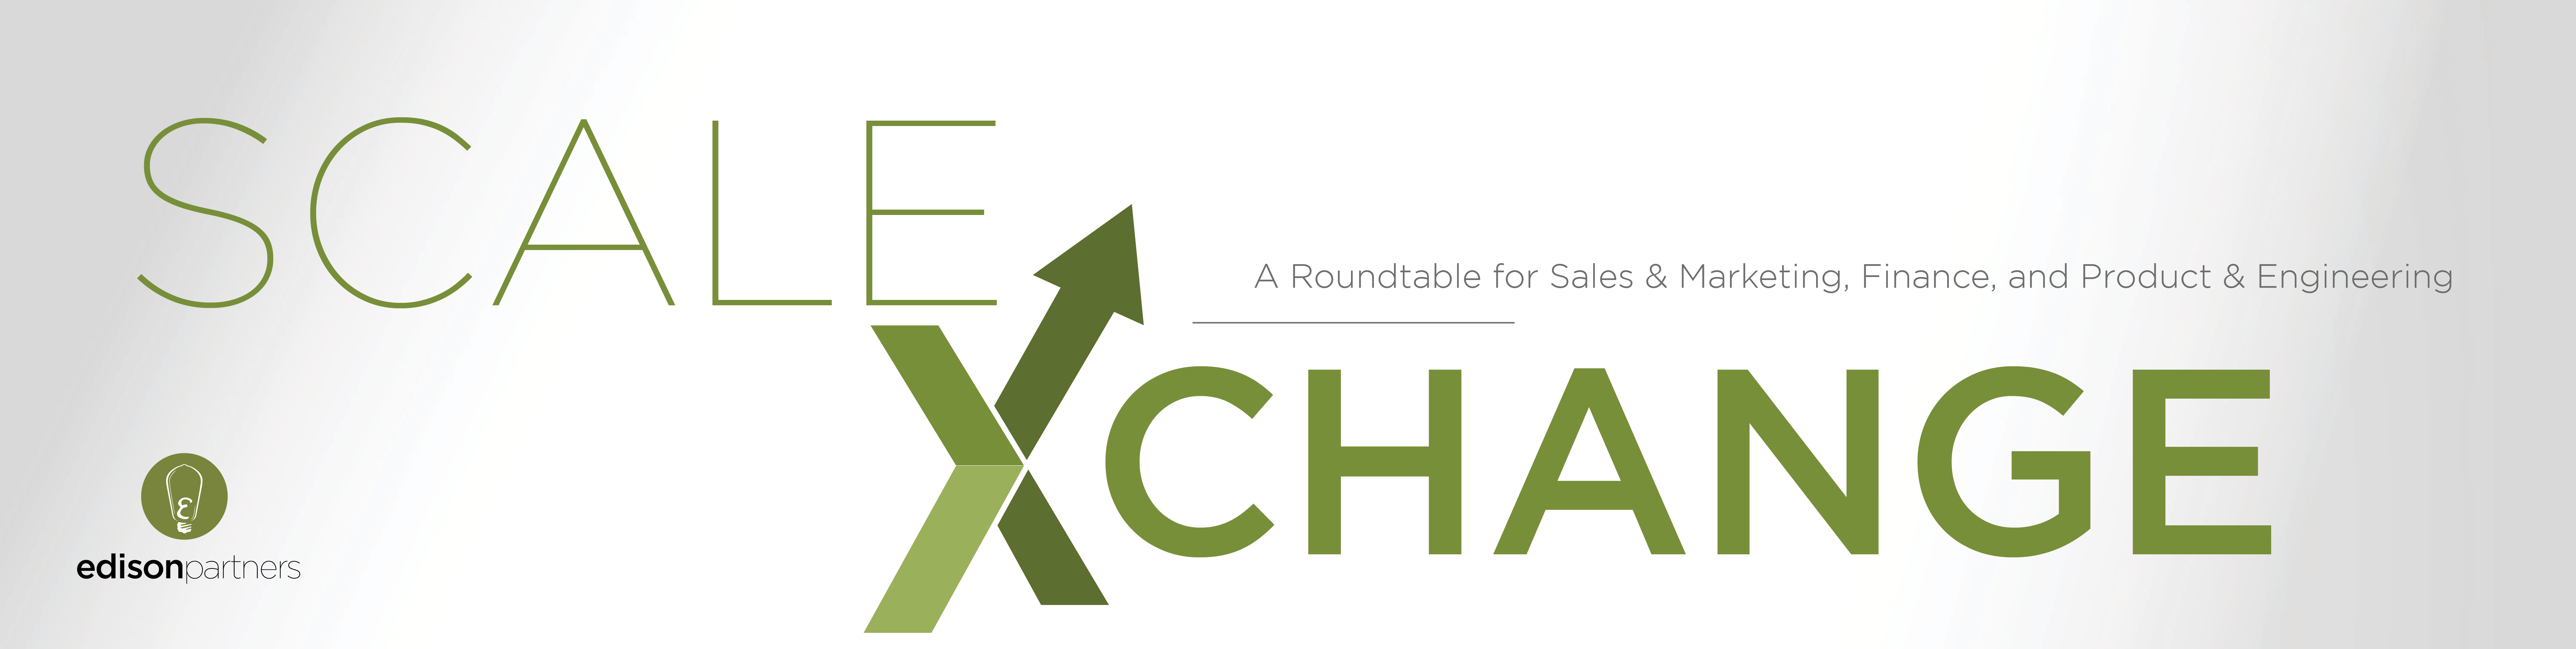 Scale Xchange Banner_ Save the Date-3